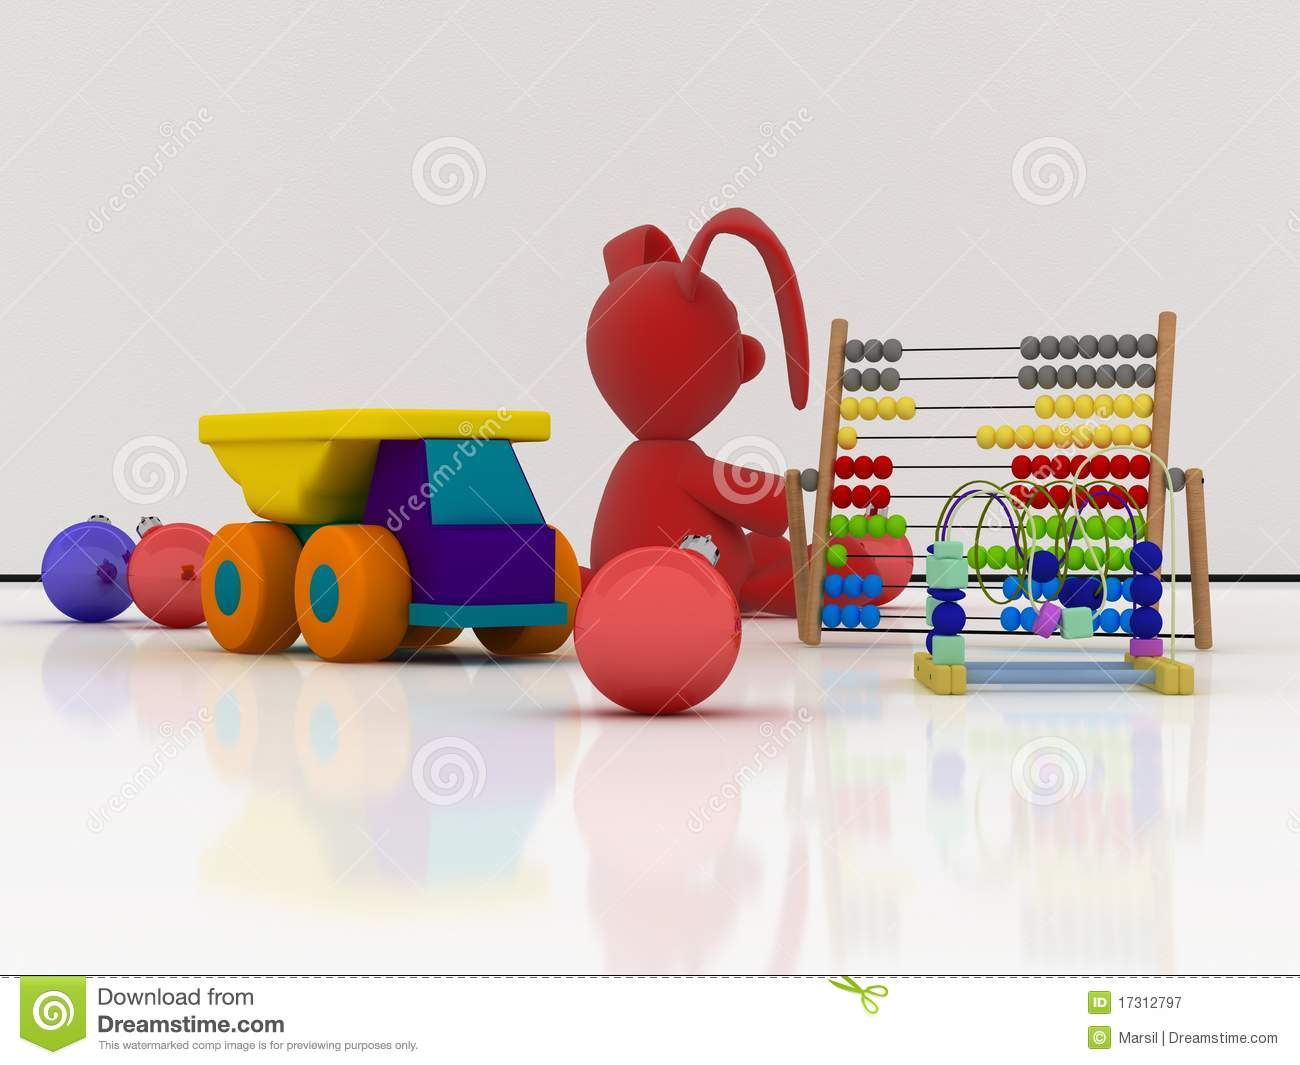 Toys For Christmas Royalty Free Stock Photography   Image  17312797 bZNOWBQ2